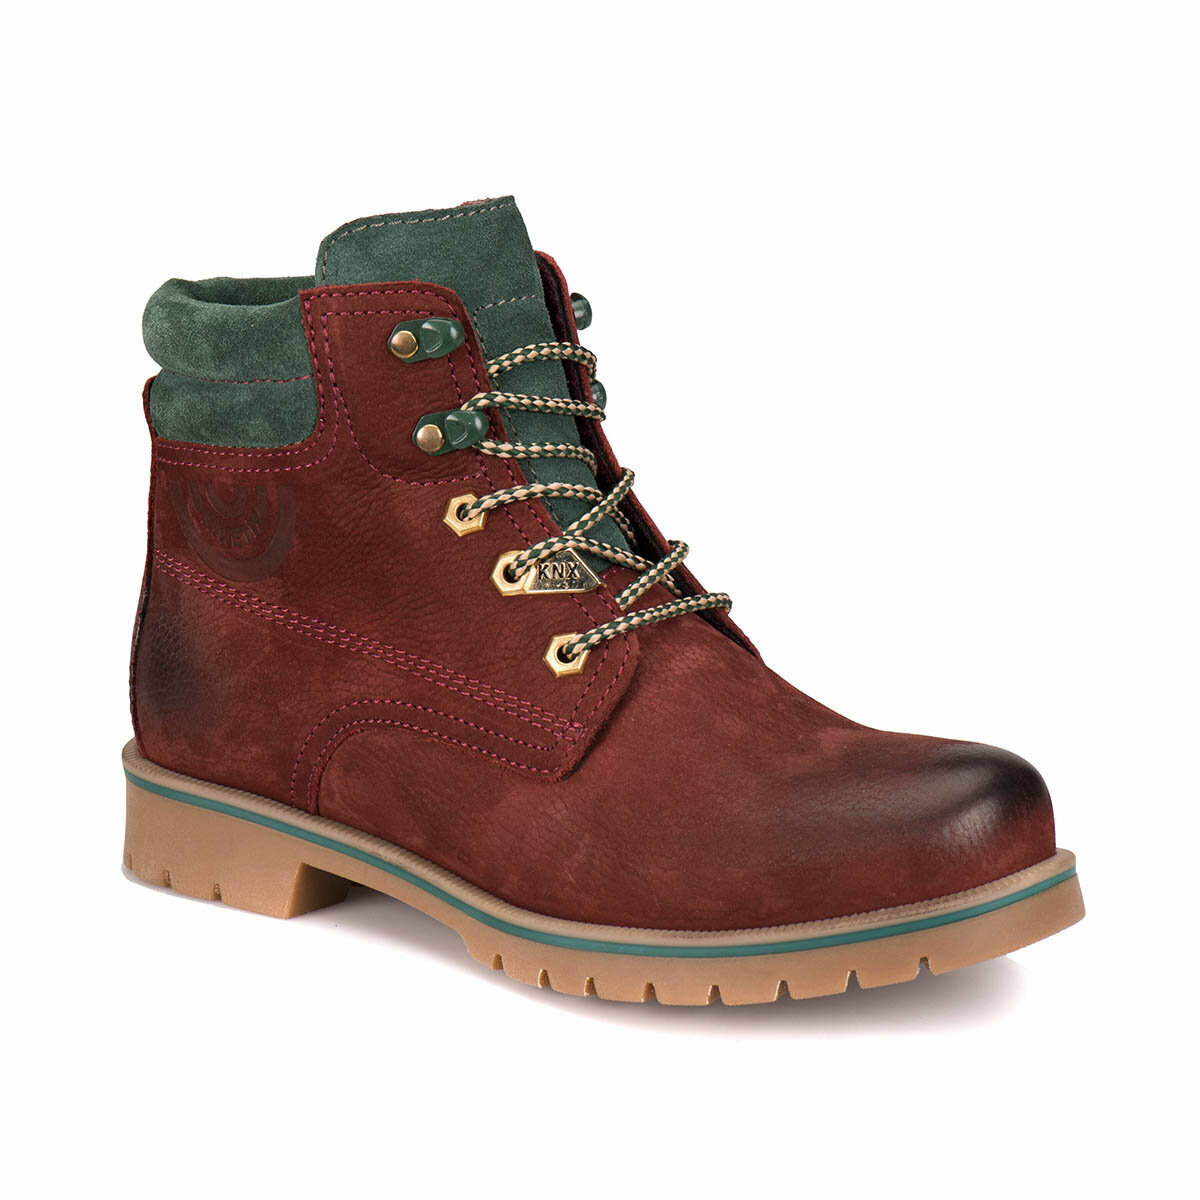 FLO Men Boots Dark Red Color Winter Autumn Season Fashion Comfortable Men's Casual Boots Shoes Мужские ботинки A1305068 KINETIX